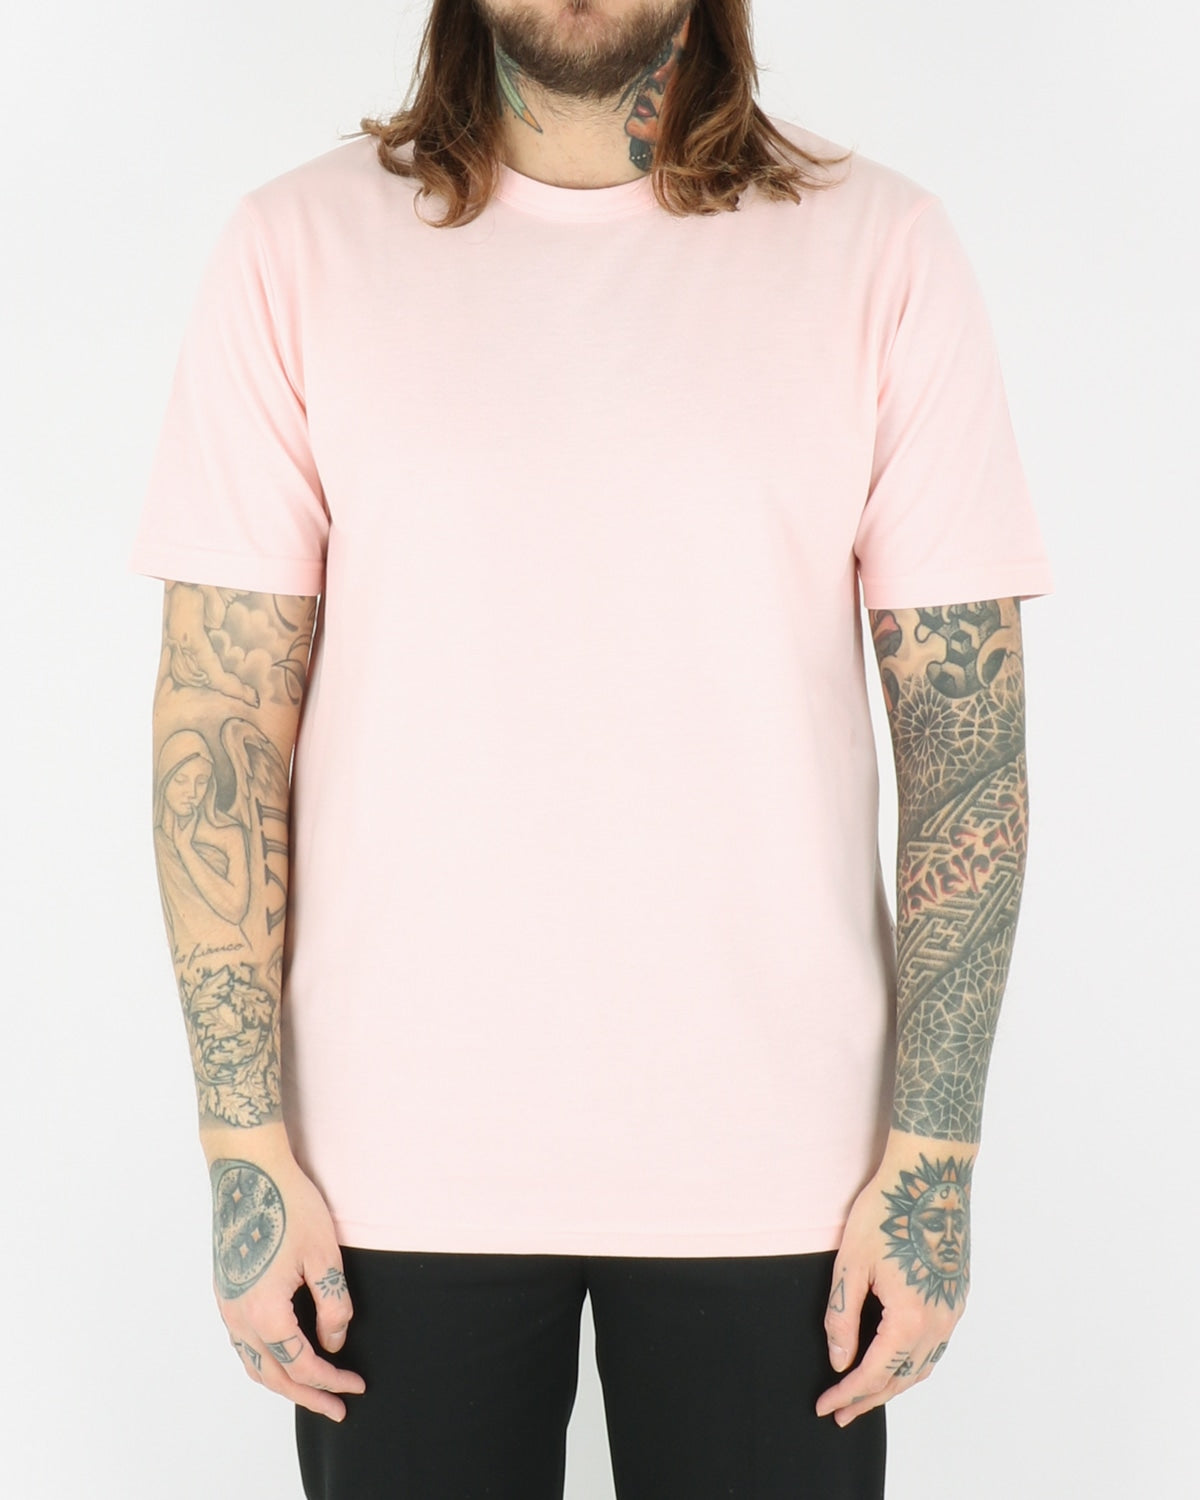 wood wood_ale t-shirt_light pink_view_1_3